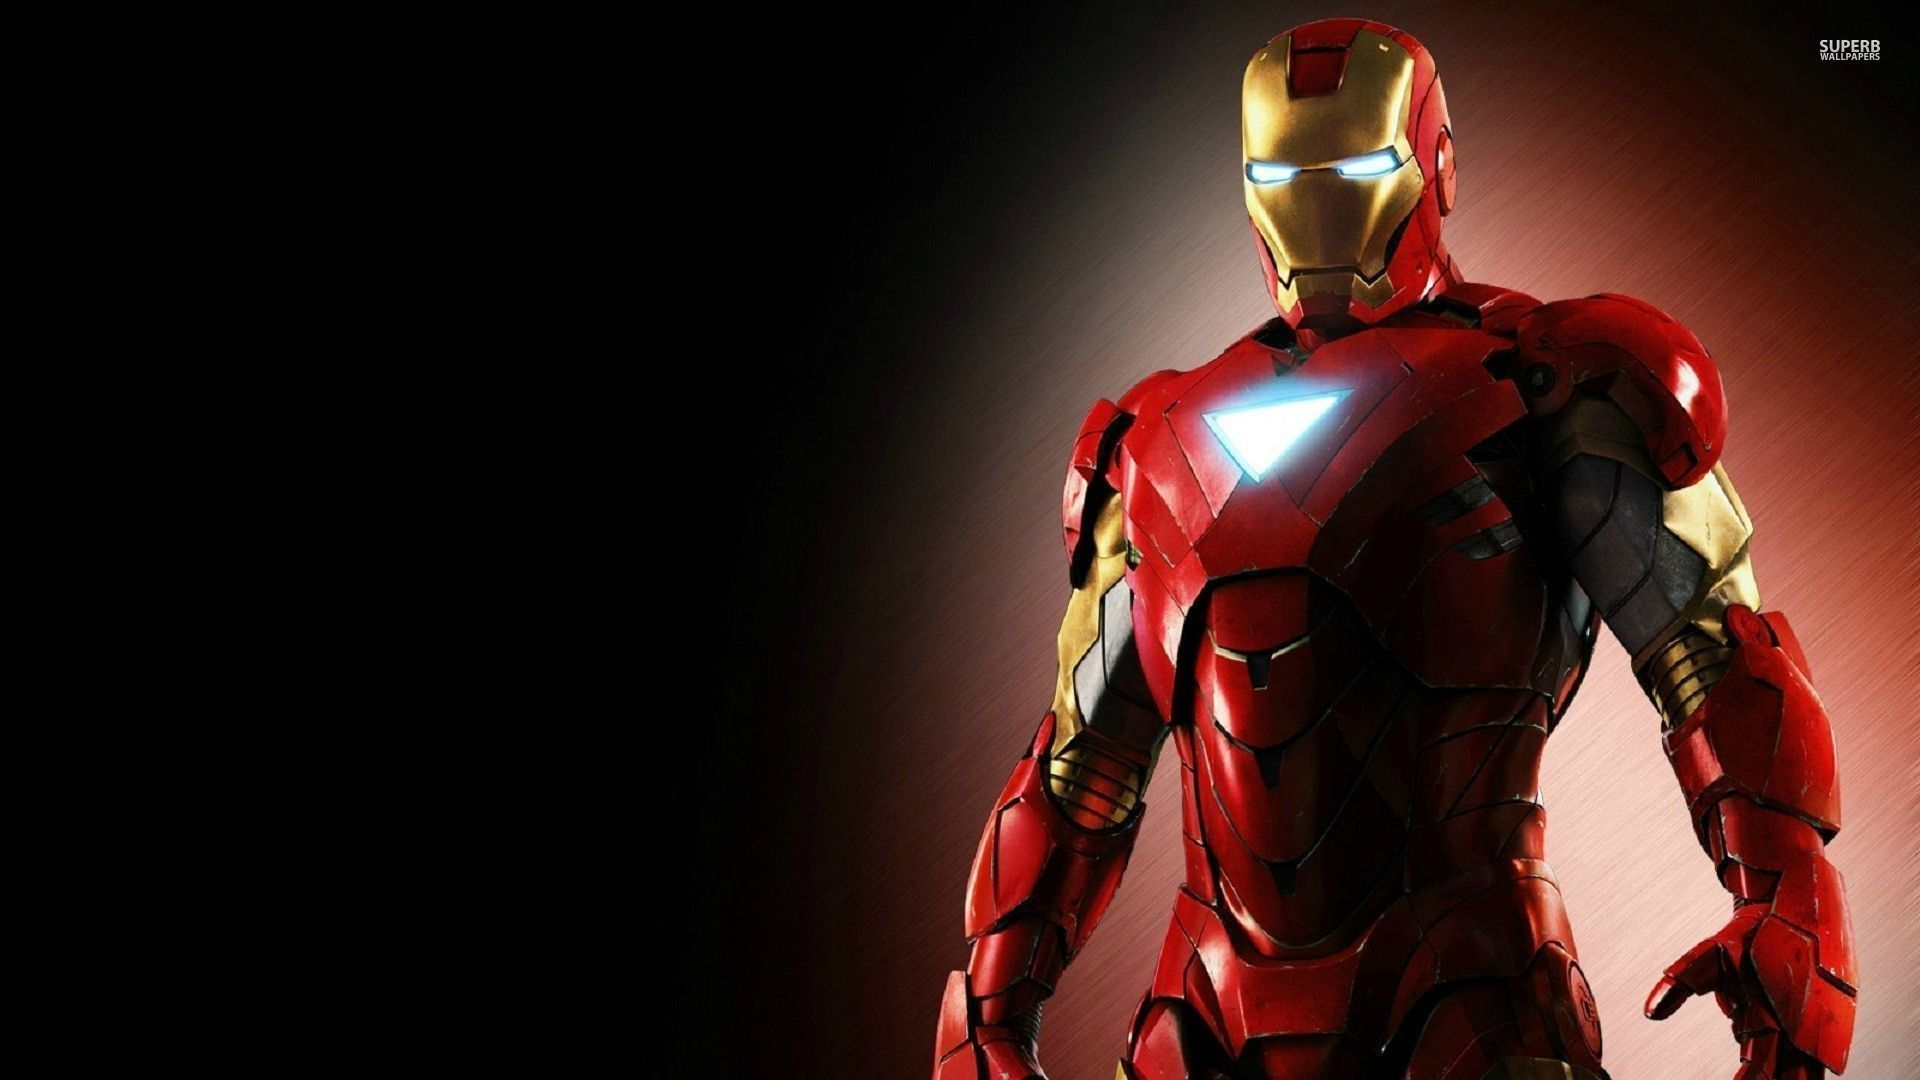 Iron Man Hd Wallpaper X Wallpapers In 2019 Pinterest Iron Man